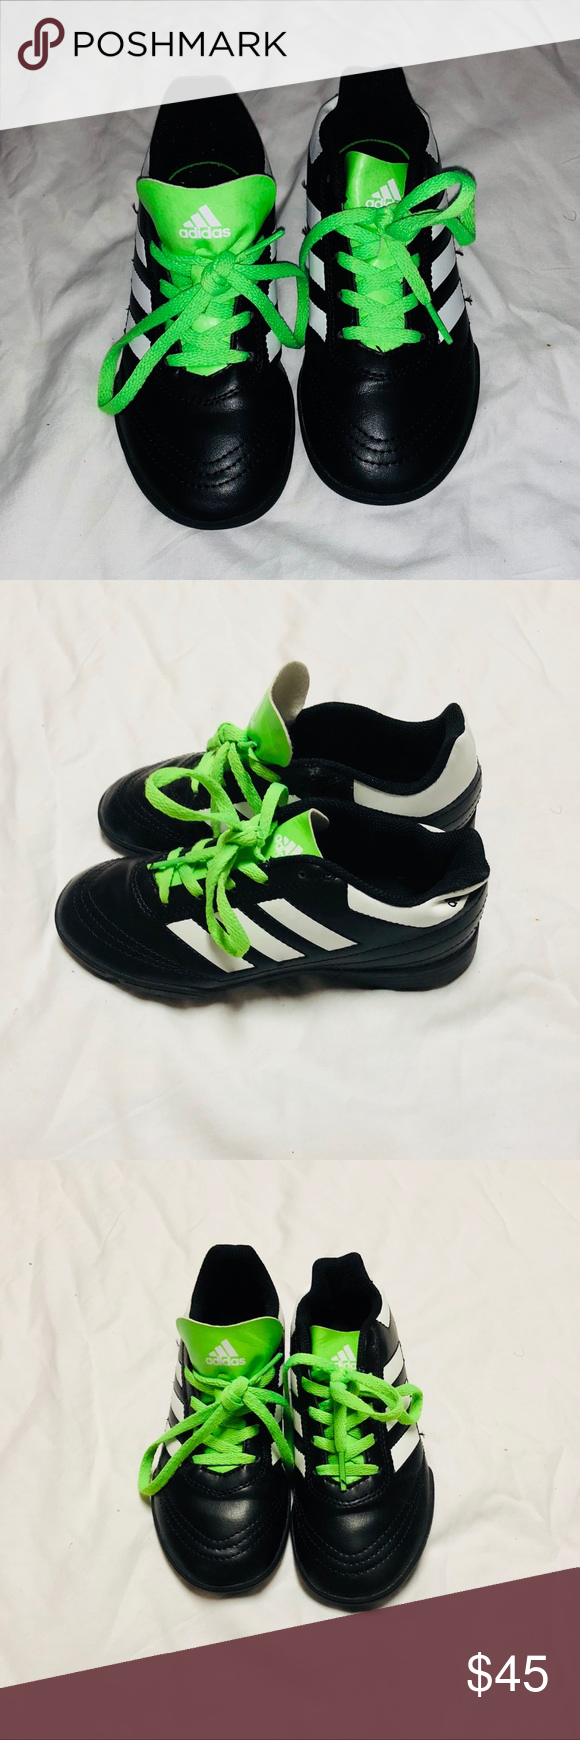 new concept 6d7b6 9b4ed Boys Goletto VI TF J Soccer Shoe size 1 adidas Boys adidas size 1 soccer  shoes. New in box, tried on one time. adidas Shoes Sneakers